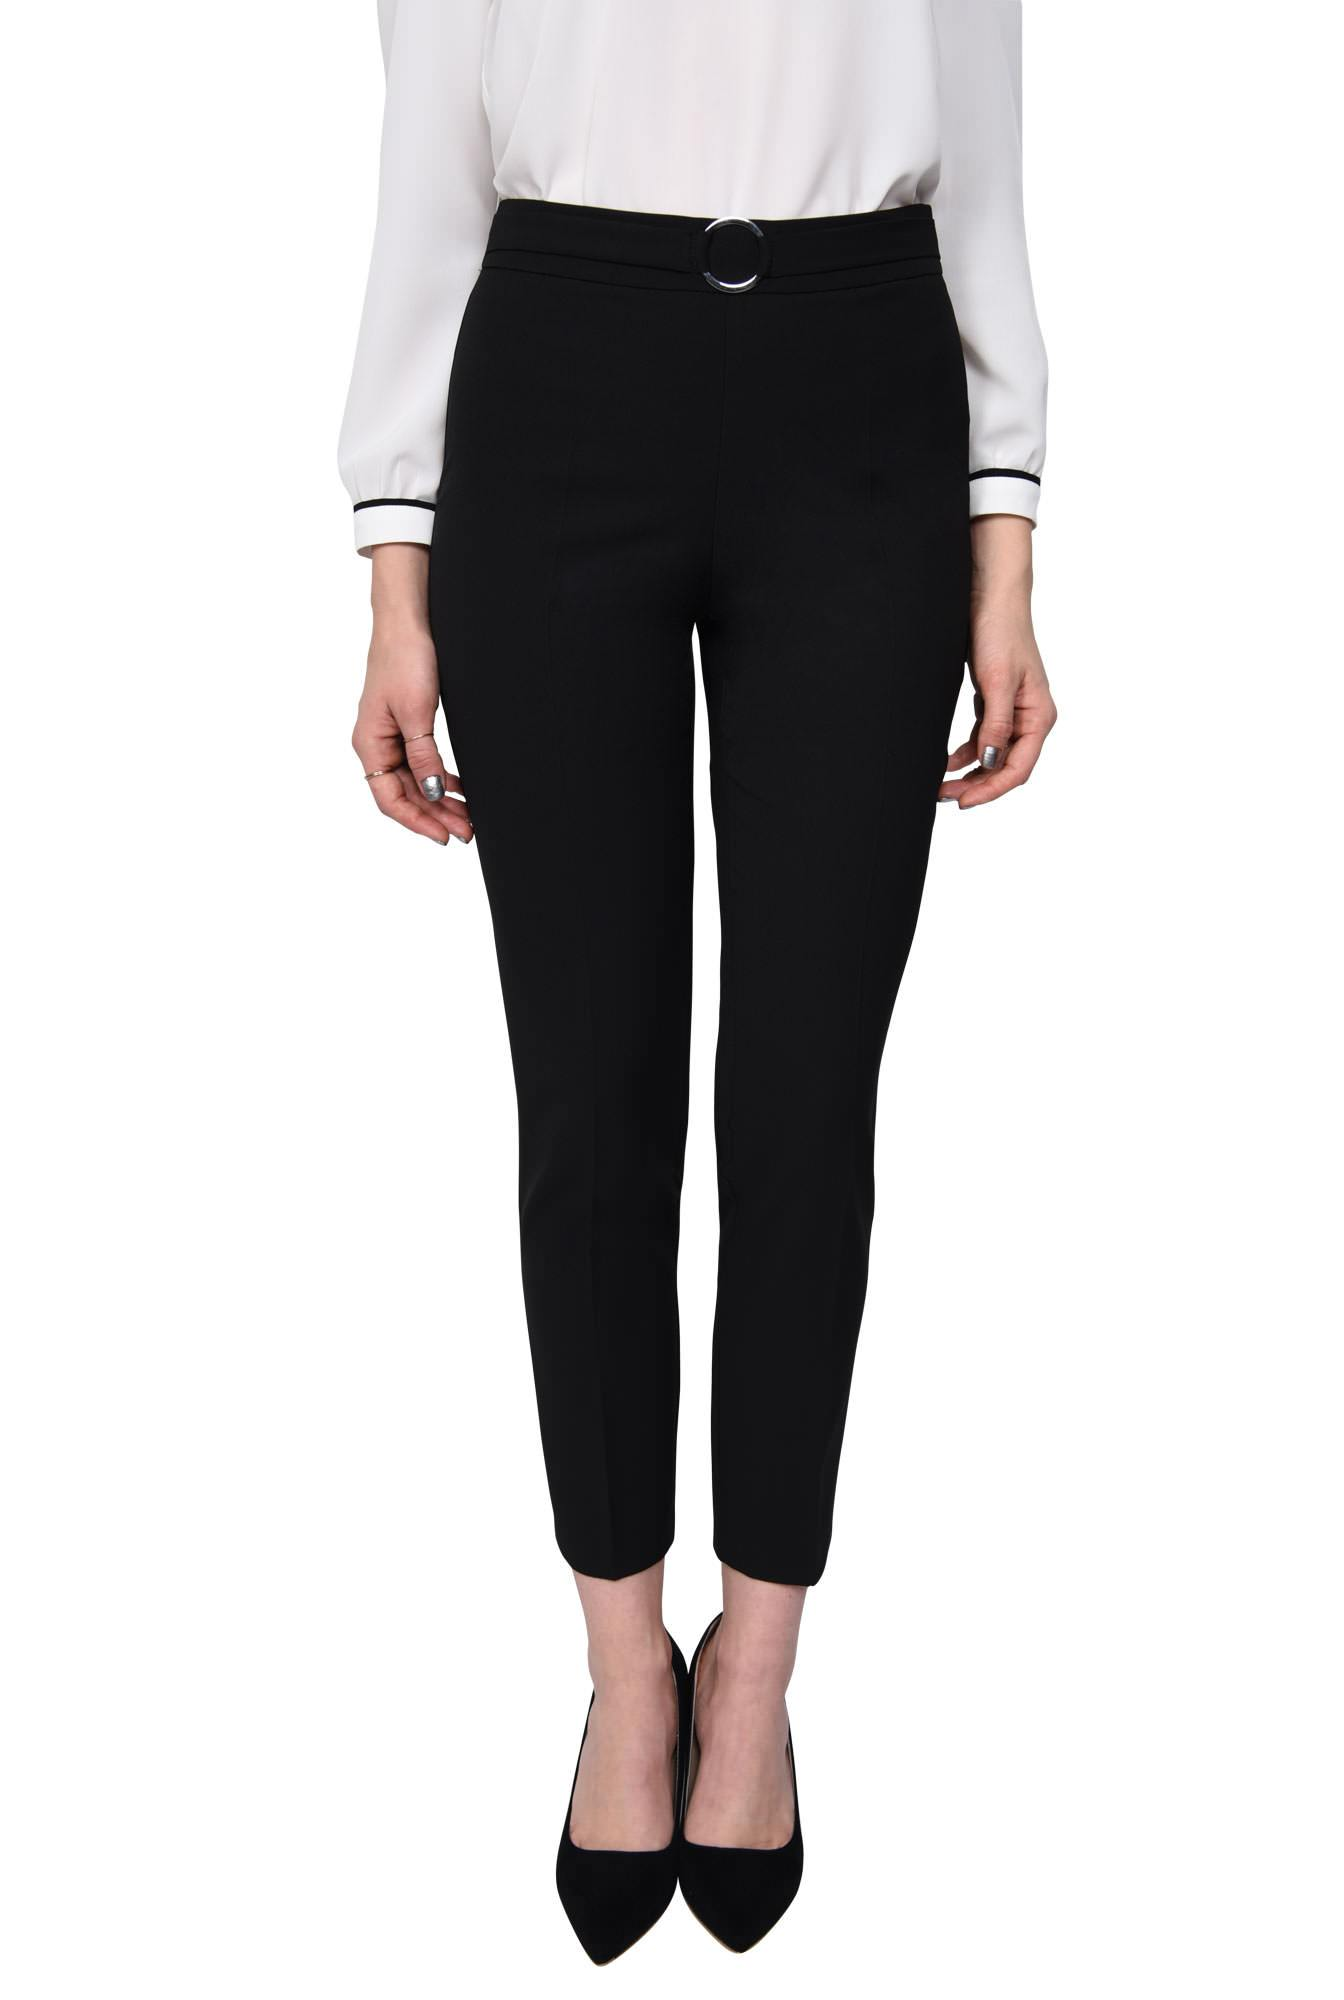 PANTALON OFFICE CONIC PT 127-NEGRU